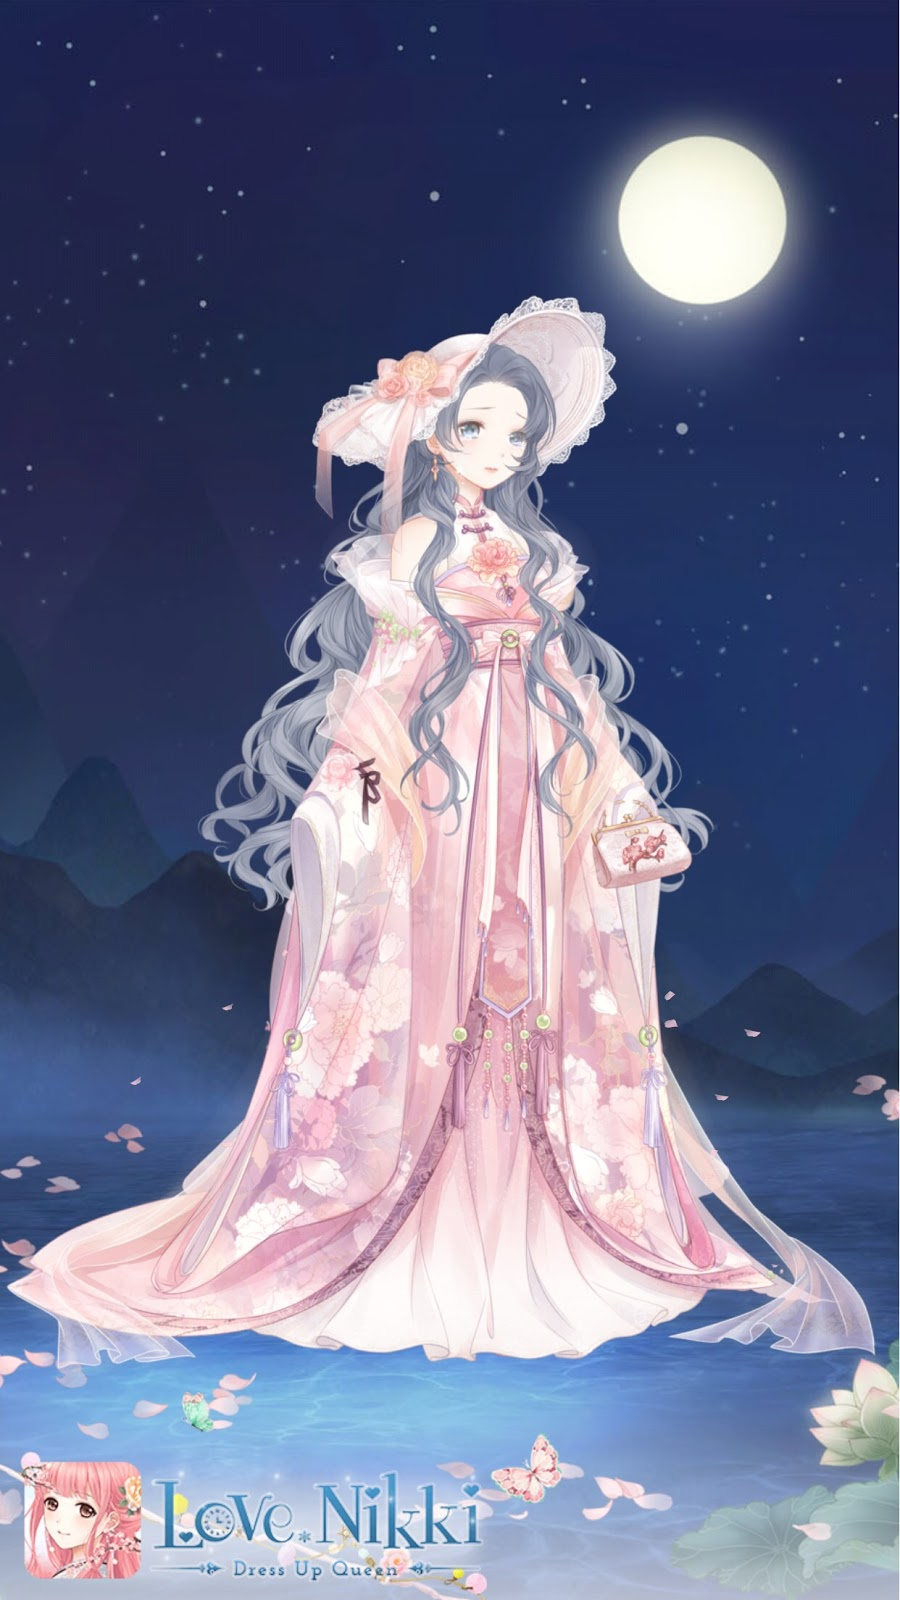 Love nikki dress up queen launched in may of 2017 is an international fashion show game where a player taking on the avatar of nikki has to defeating